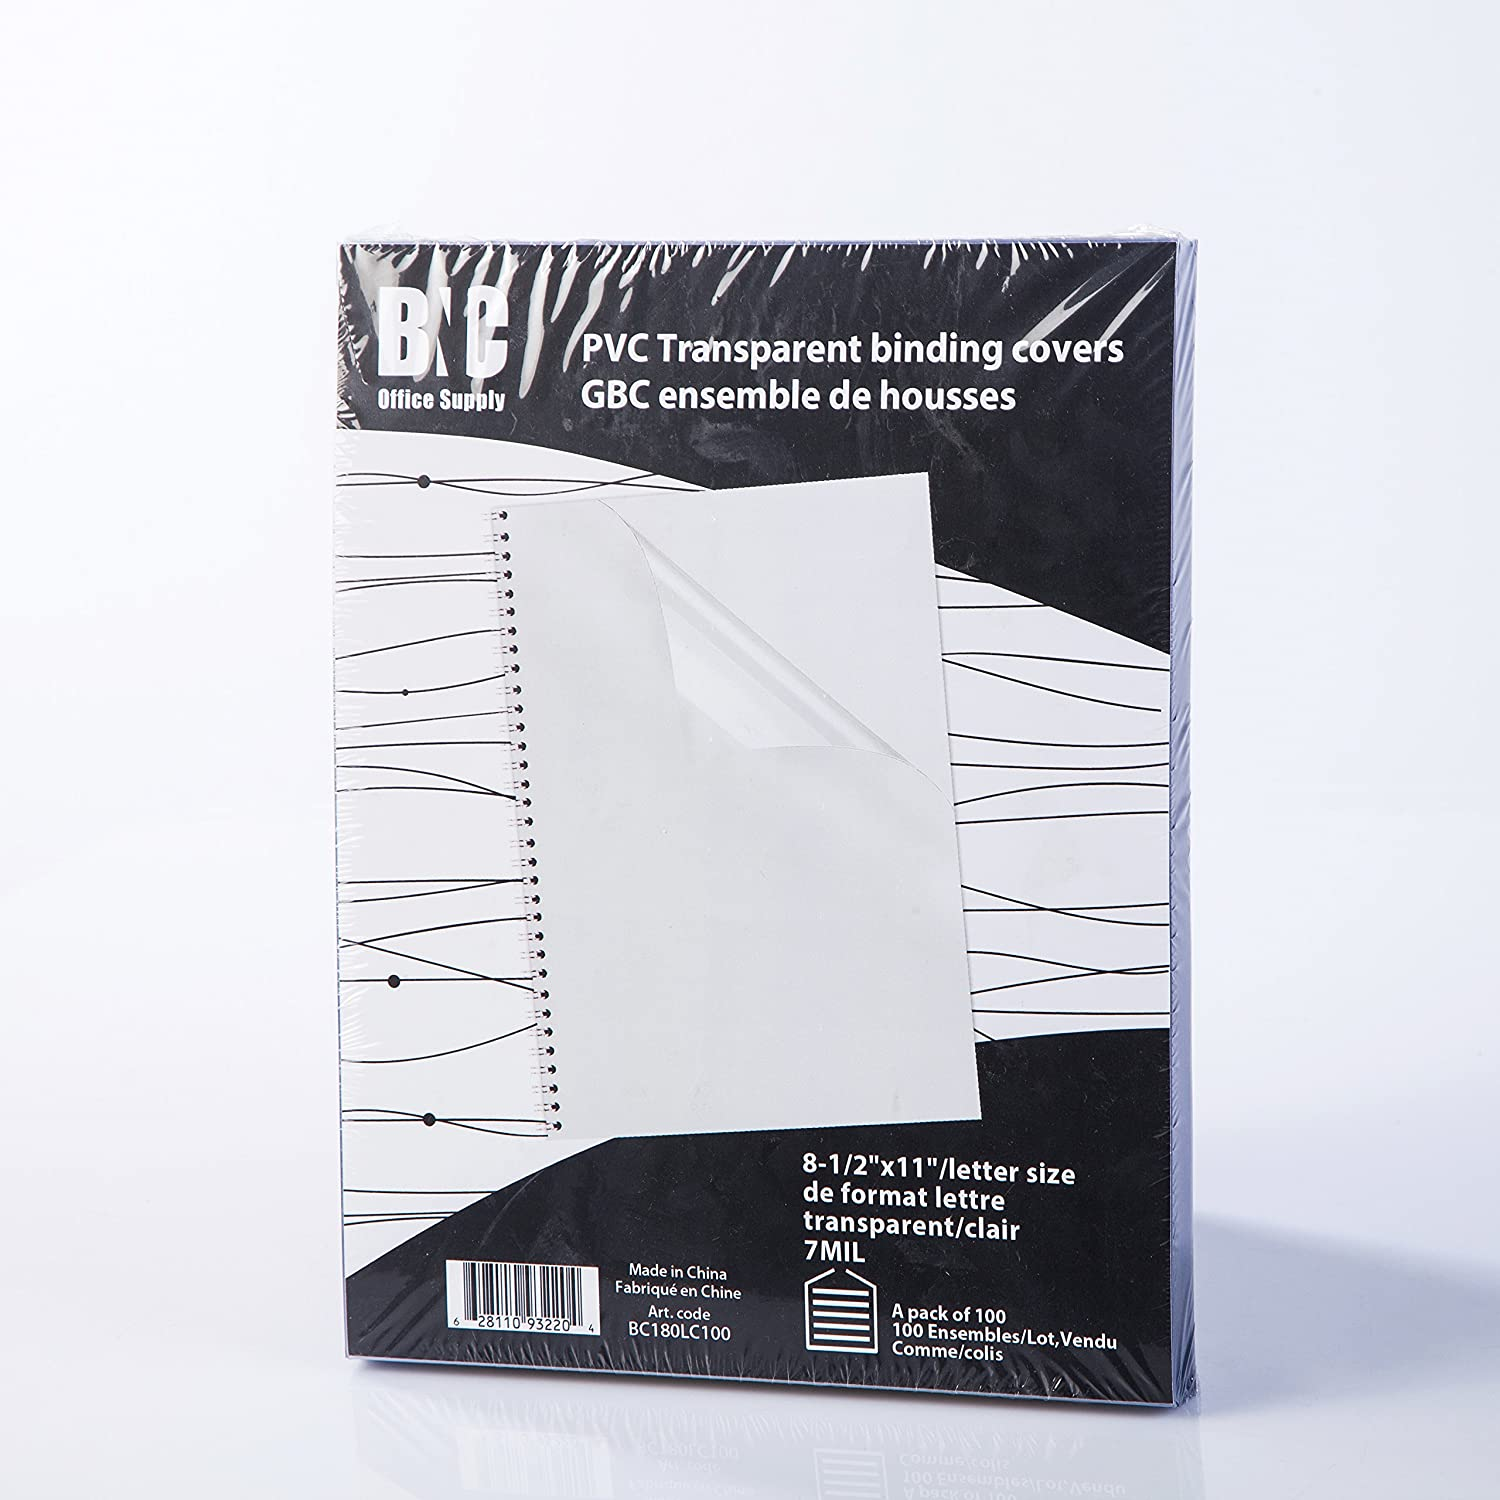 B077H2RGCL BNC 7 Mil 8-1/2 x 11 Inches, Letter Size PVC Binding Covers - Pack of 100, Clear (BC180LC100) 91rhbYHBYoL